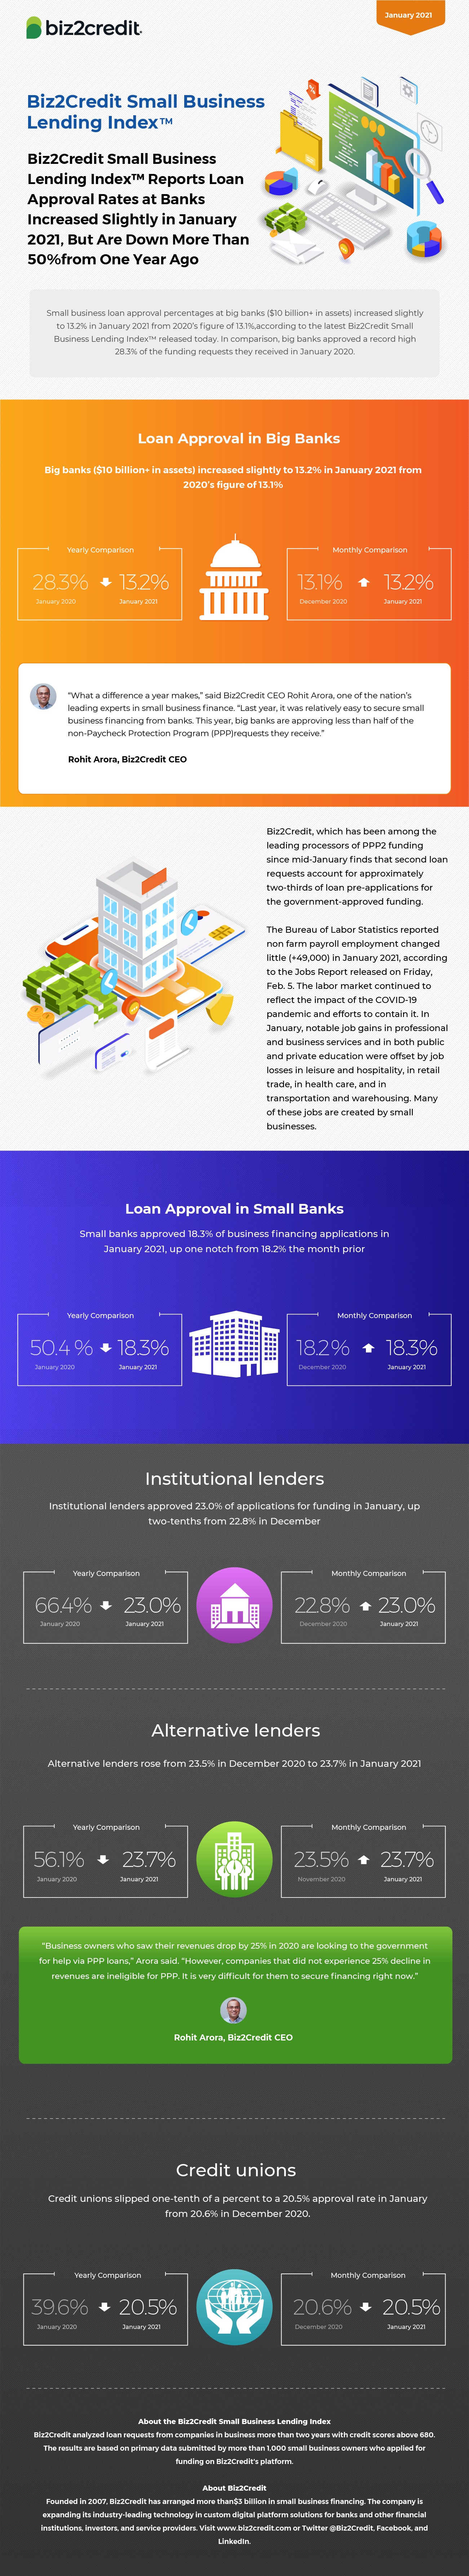 January 2021 Lending Index Infographic